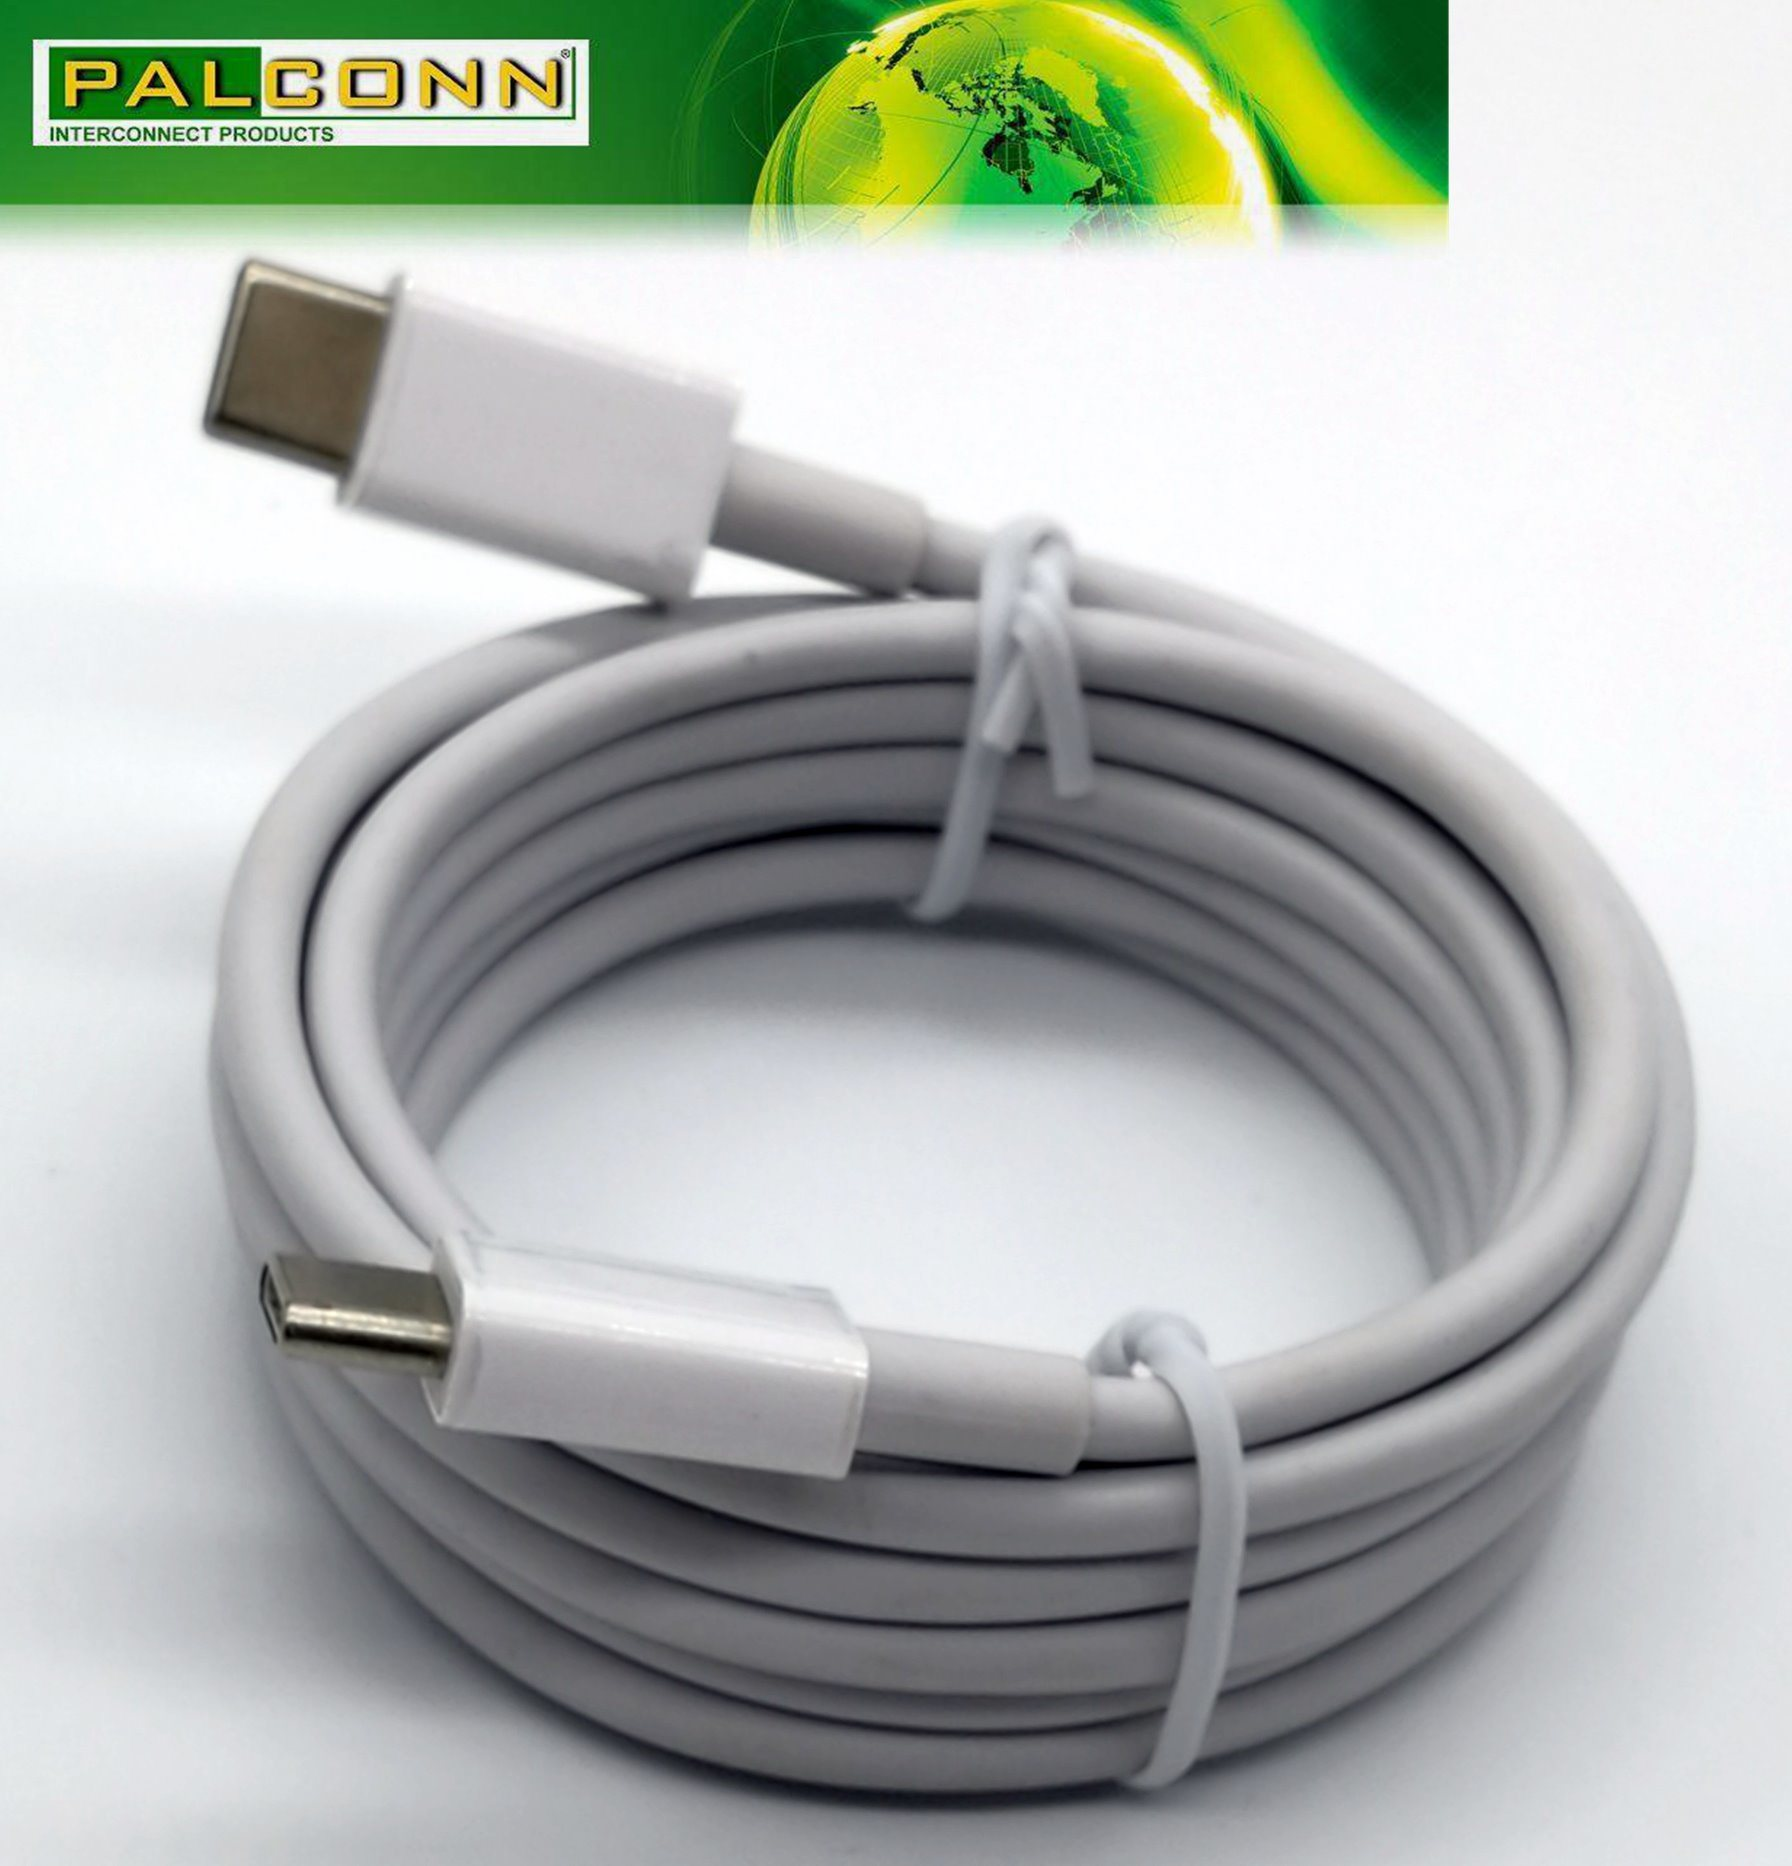 USB2.0 Type C Cable, L=1800mm, E-MARK, Meet Current~5A, for Type C Pd Power Adapter